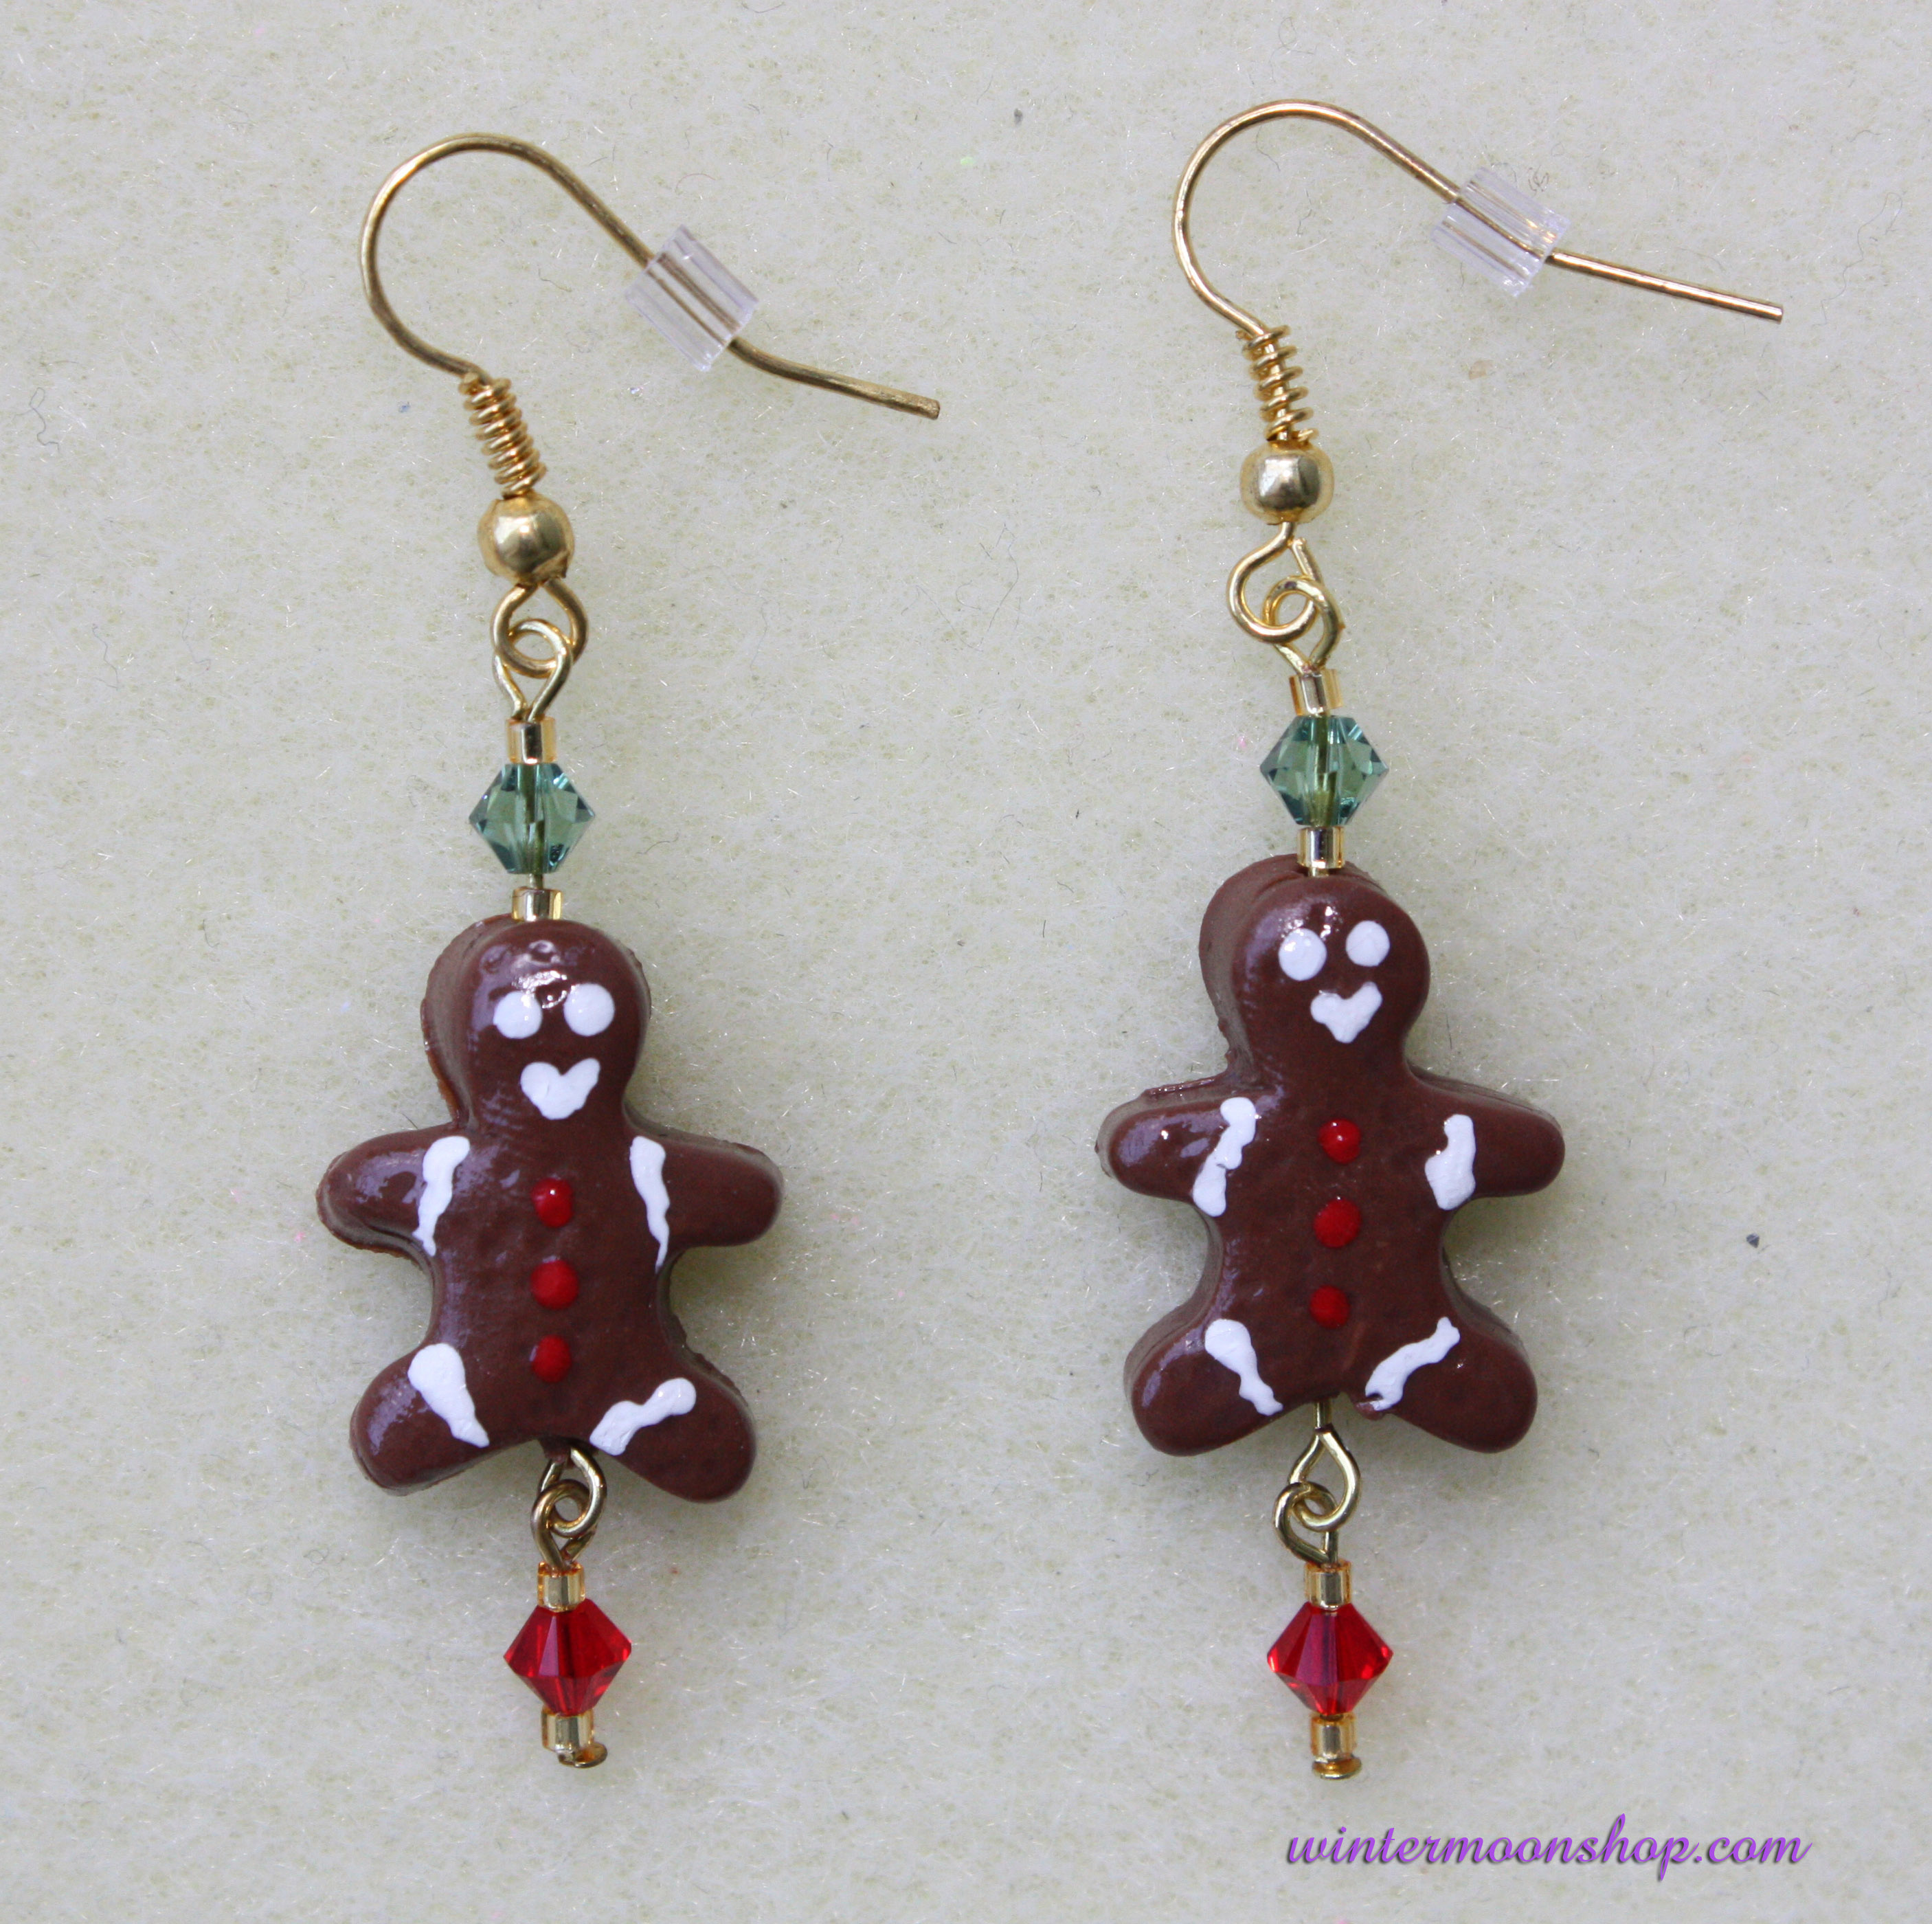 Gingerbread_cookie_earrings_original